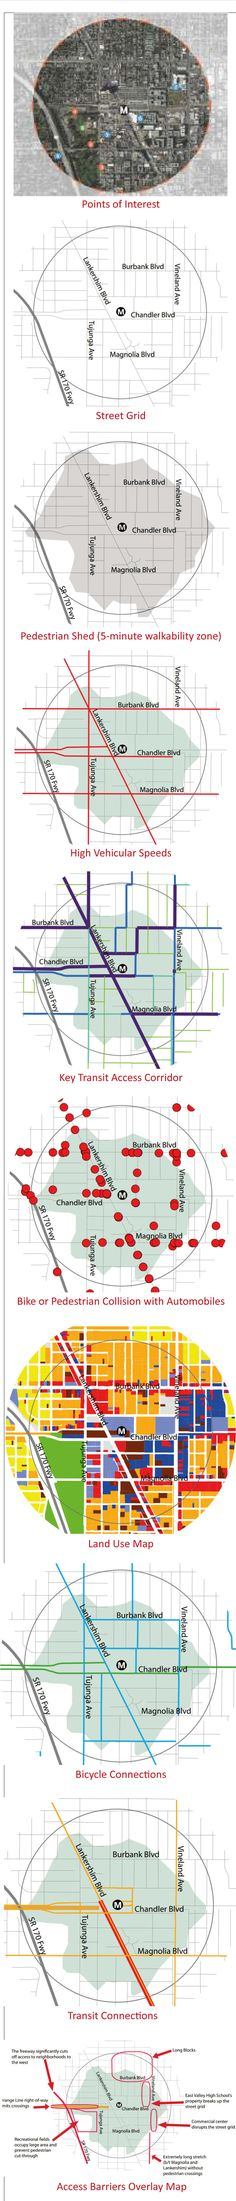 Here's a sequence ofmaps showing a stretch ofNorth Hollywood, adaptedfrompp. 20-21 of the exemplaryFirst Last plan Strategic Plan & Planning Guidelines published by LA Metro in March 2014....